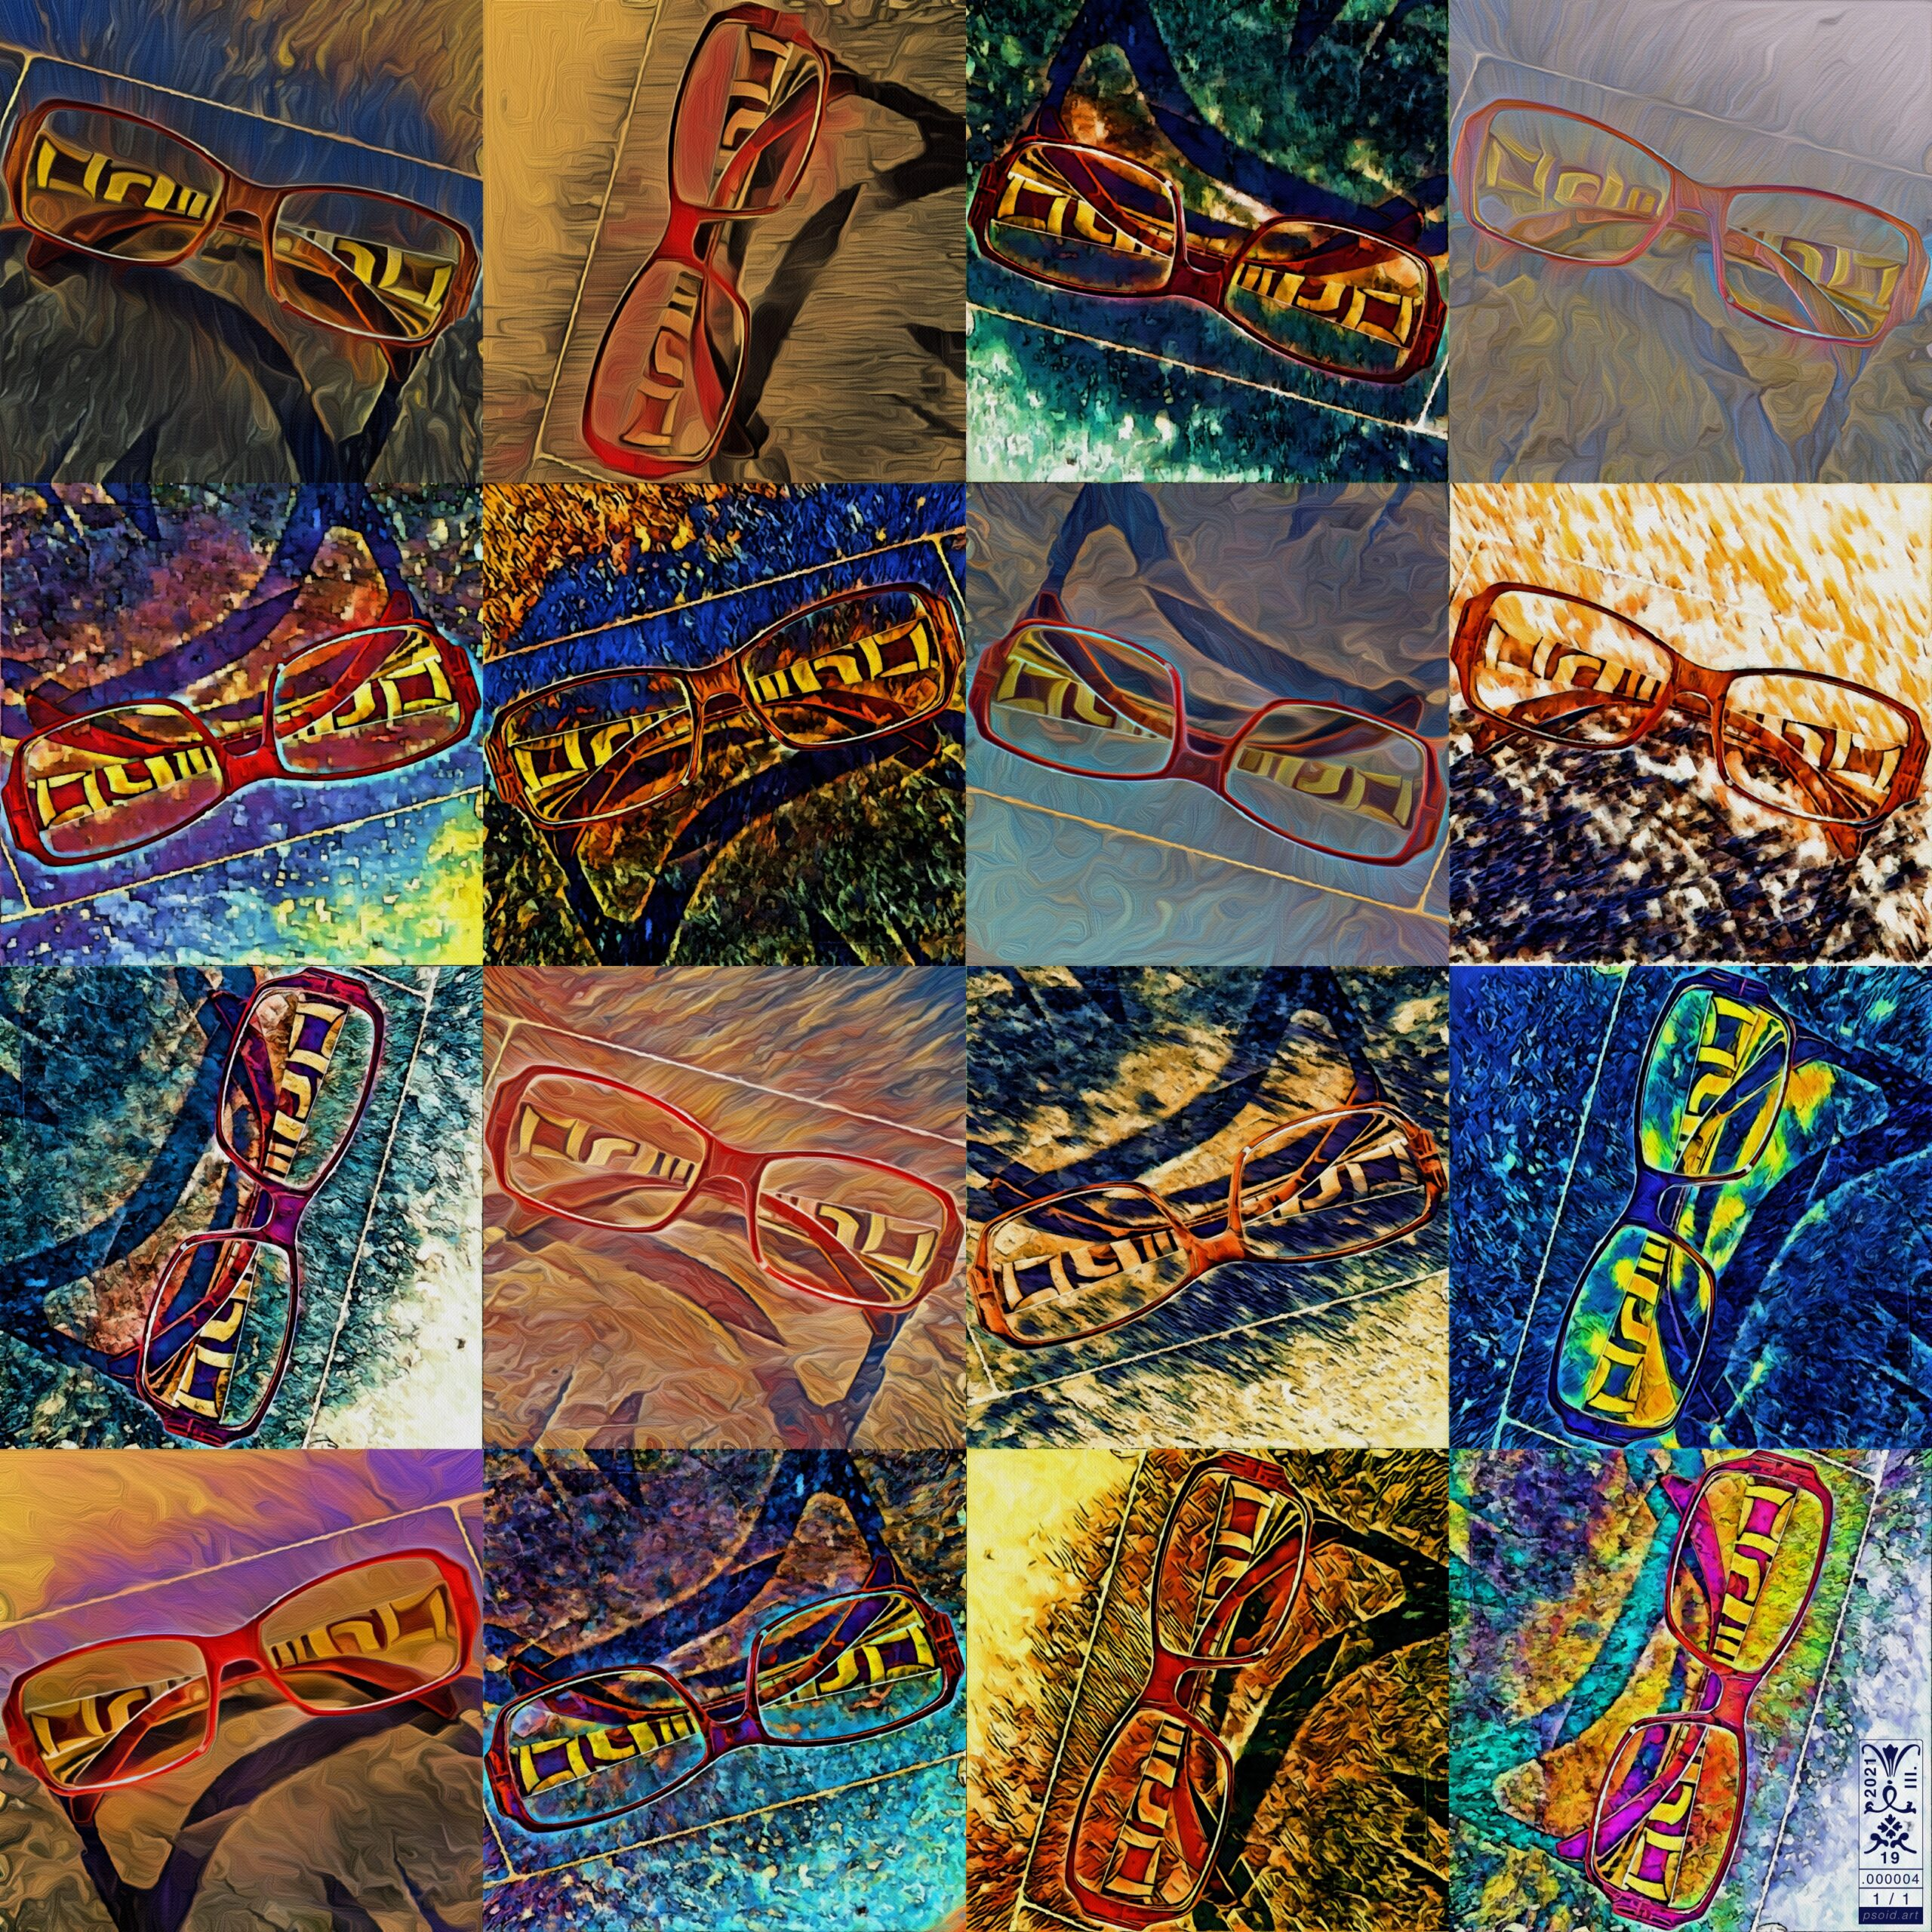 Mosaic: Enmempin's Spectacles - A RA-PS01D on psoid.art by Enmempin N. Midelobo